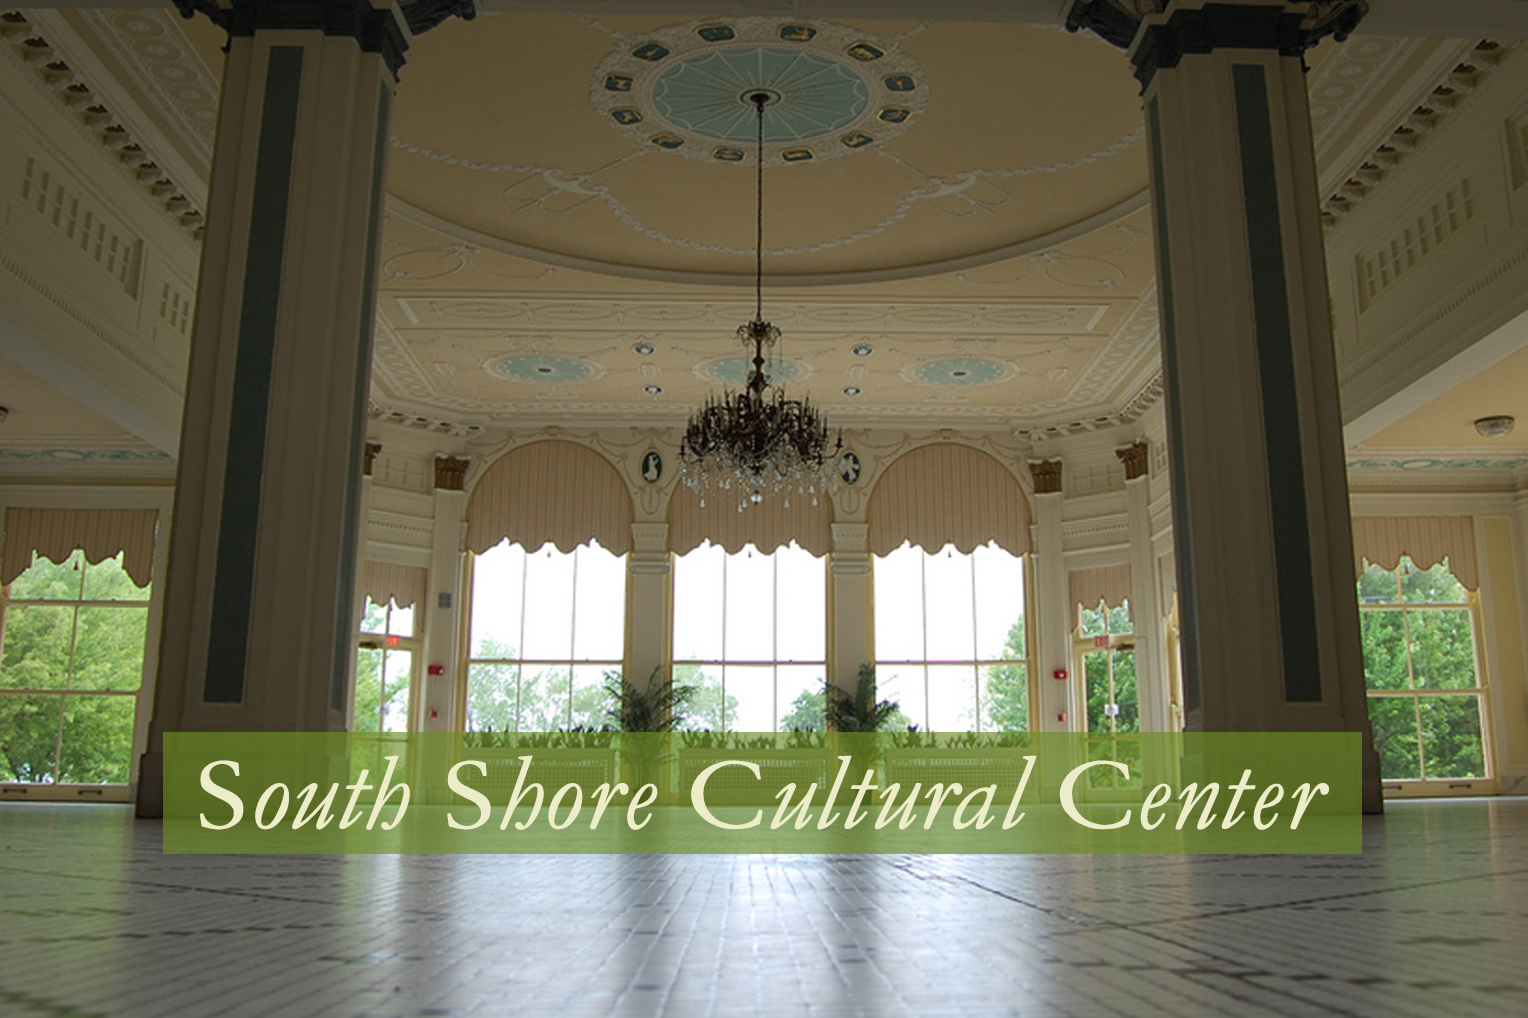 South Shore Cultural Center.jpg